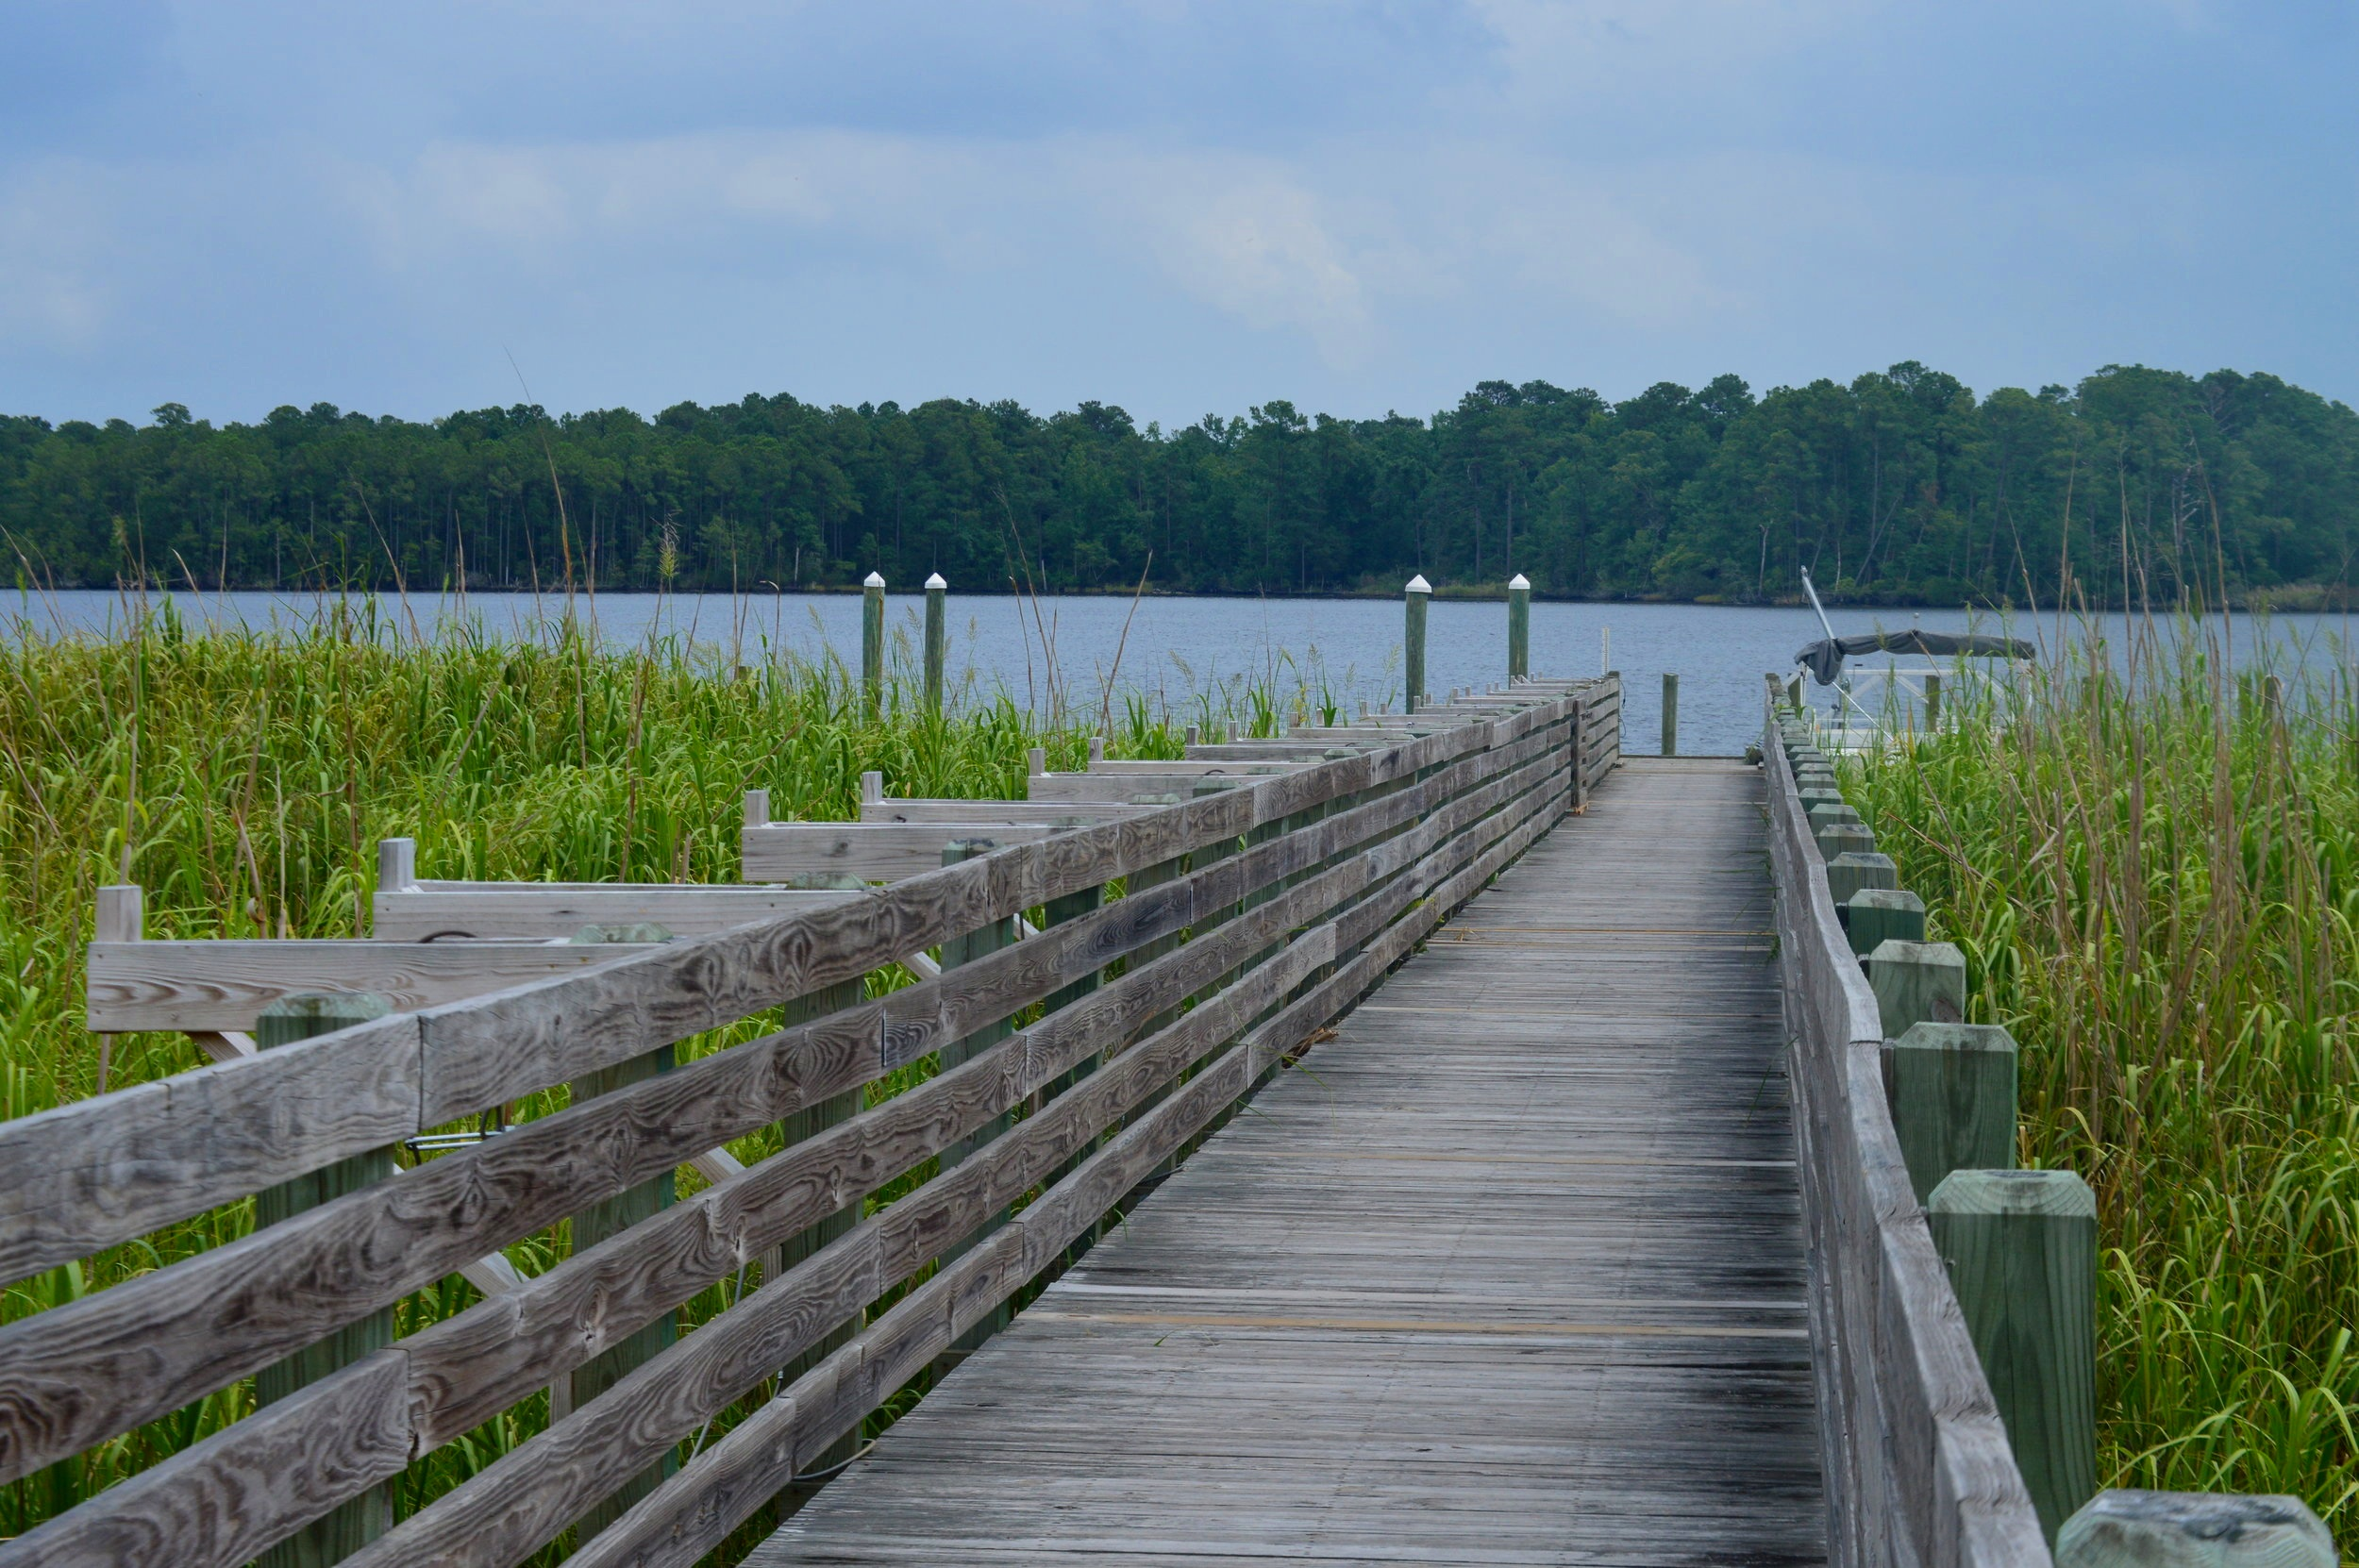 Sturgeon City Park brings you up close to the story of a substantial environmental restoration effort in Jacksonville, NC.